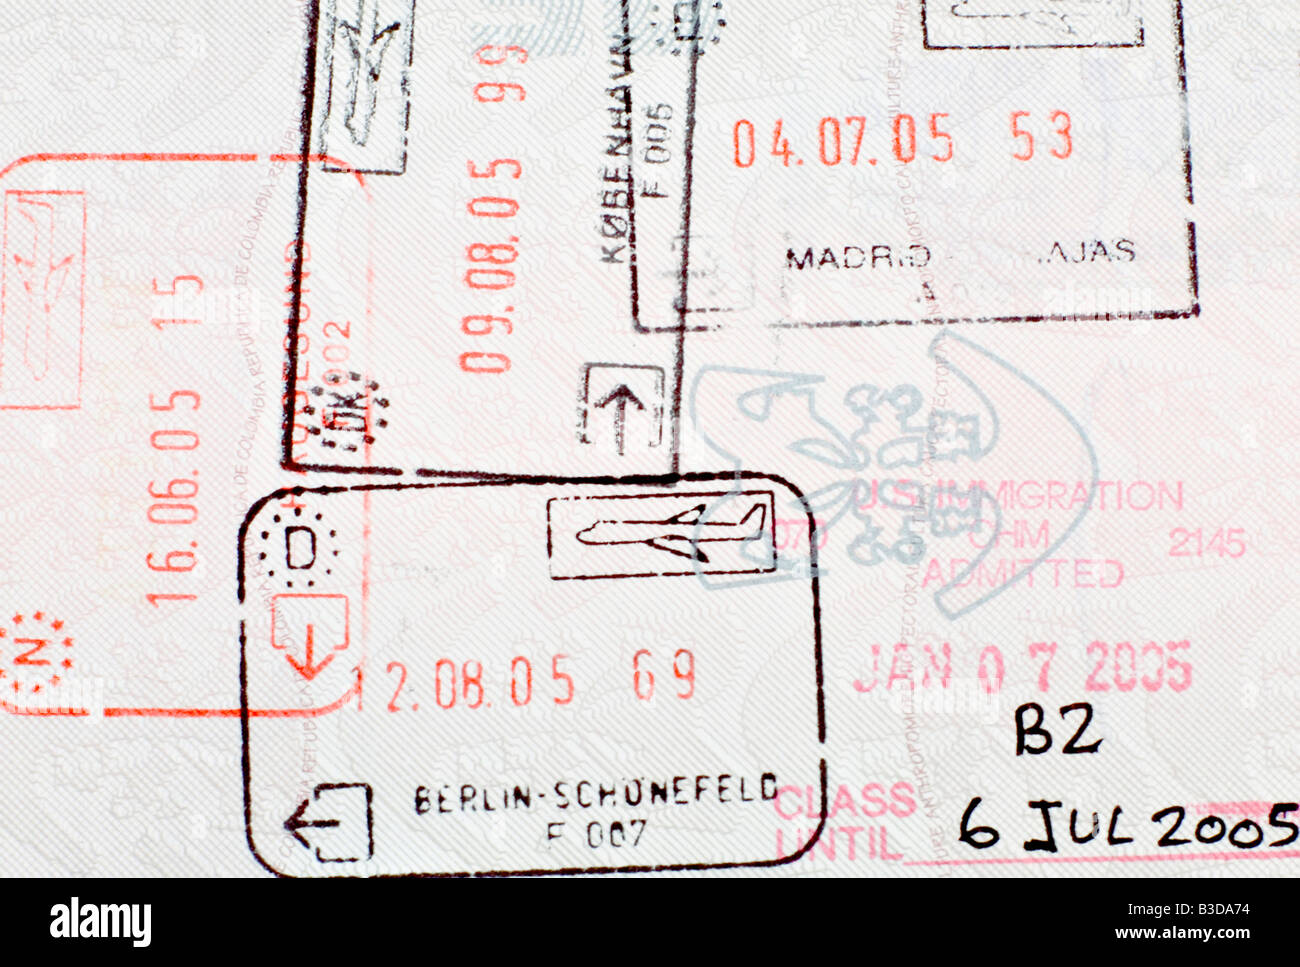 Travel stamps on a Colombian passport - Stock Image